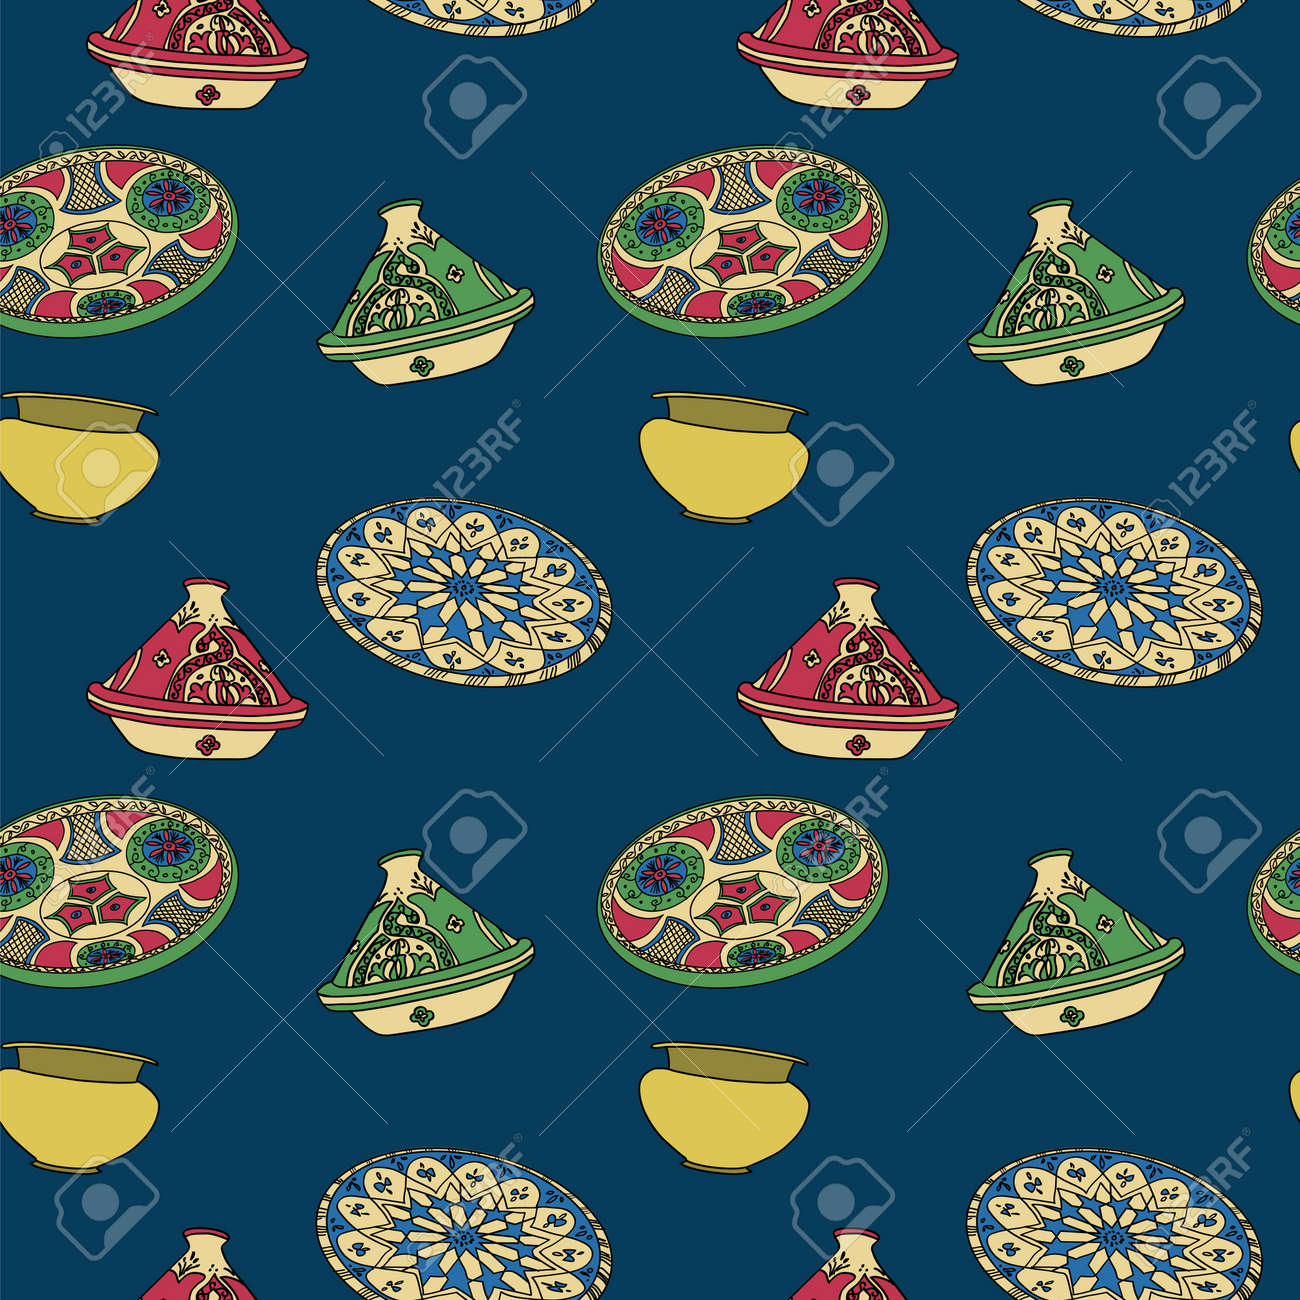 Beautiful Algeria Eid Al-Fitr Decorations - 68593111-vector-colorful-seamless-pattern-of-arabic-crockery-oriental-pottery-dishes-illustration-on-blue-bac  2018_163338 .jpg